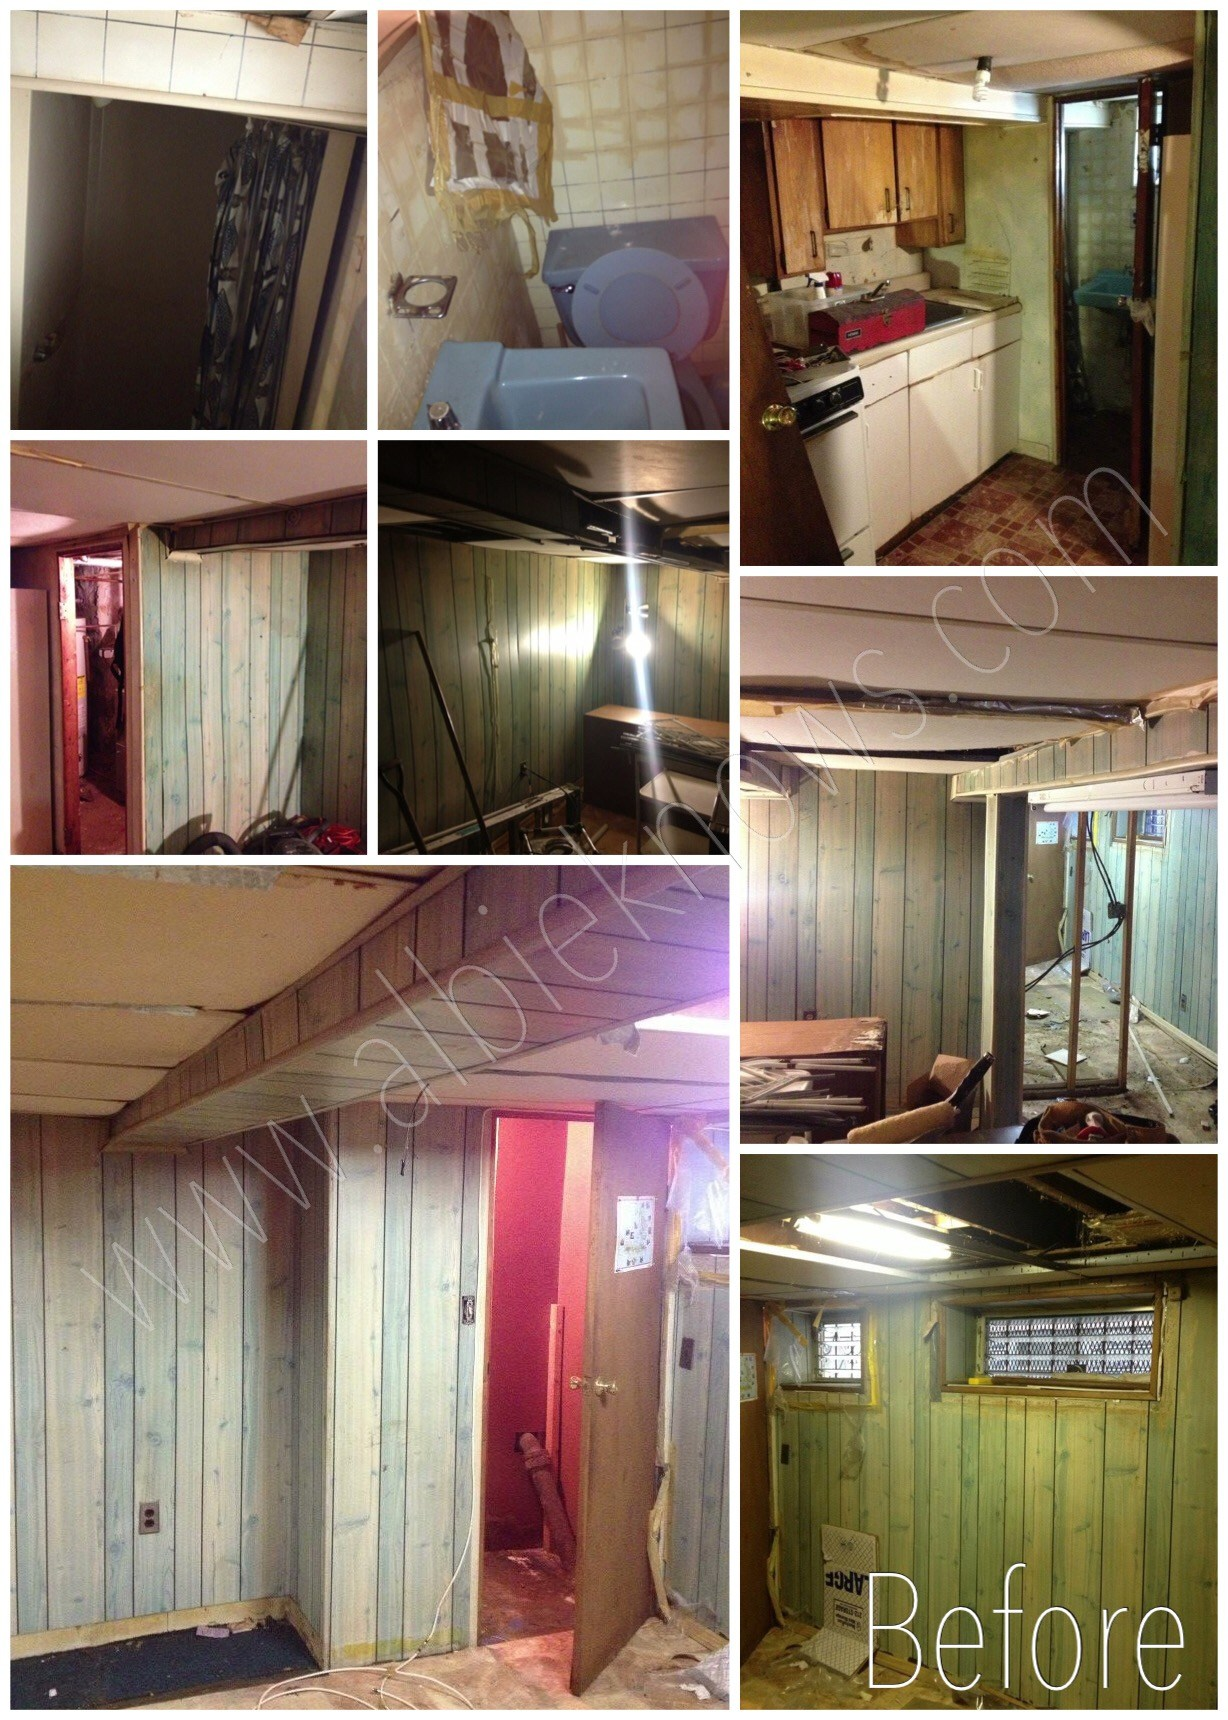 albie-knows-basement-apartment-makeover-1.jpg